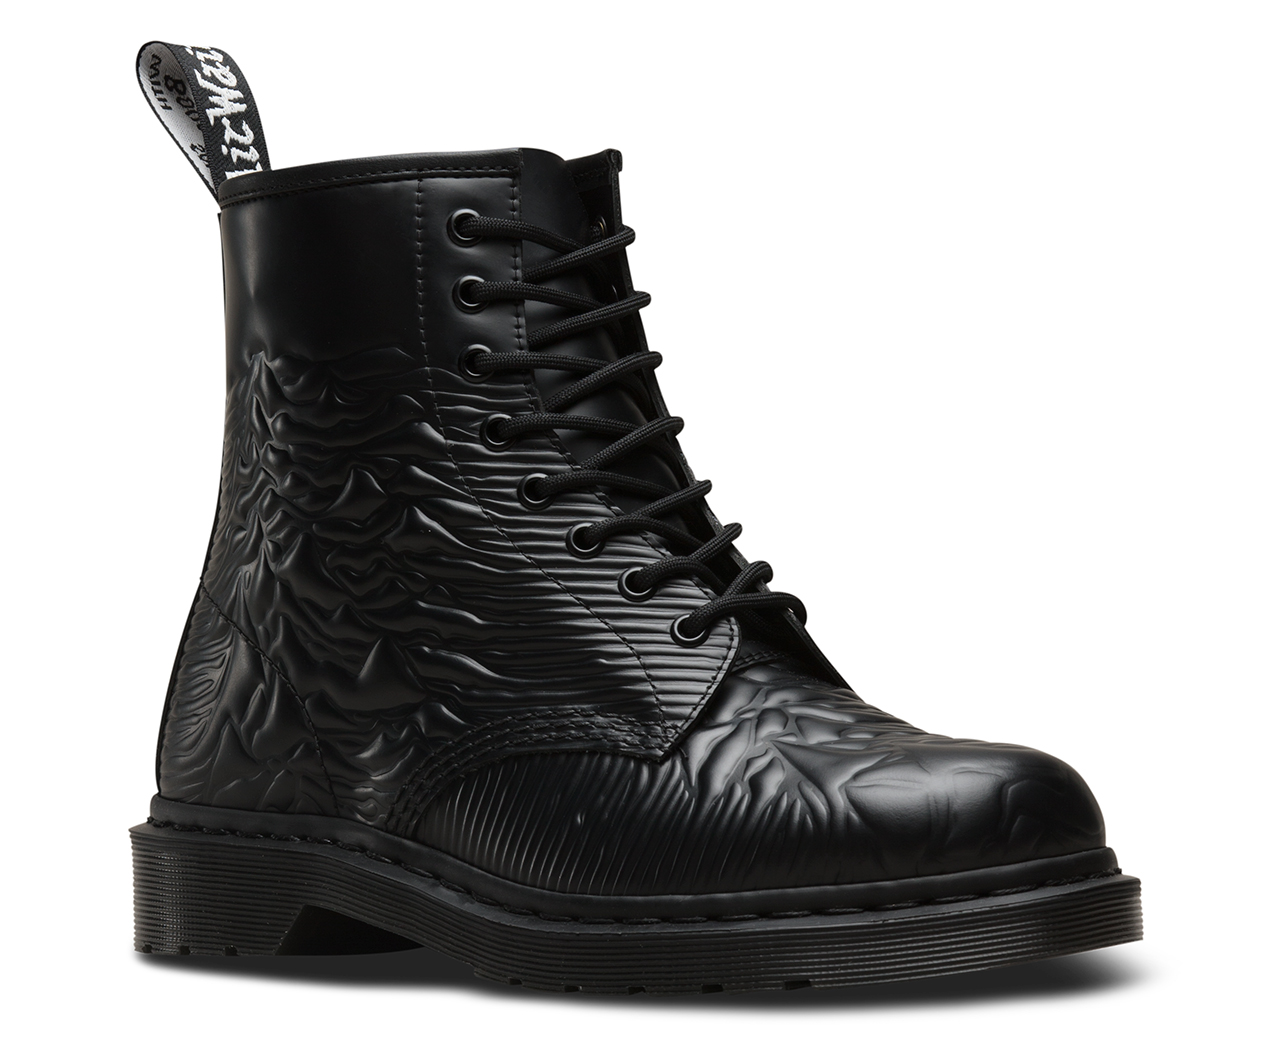 1460 Unknown Pleasures by Dr. Martens